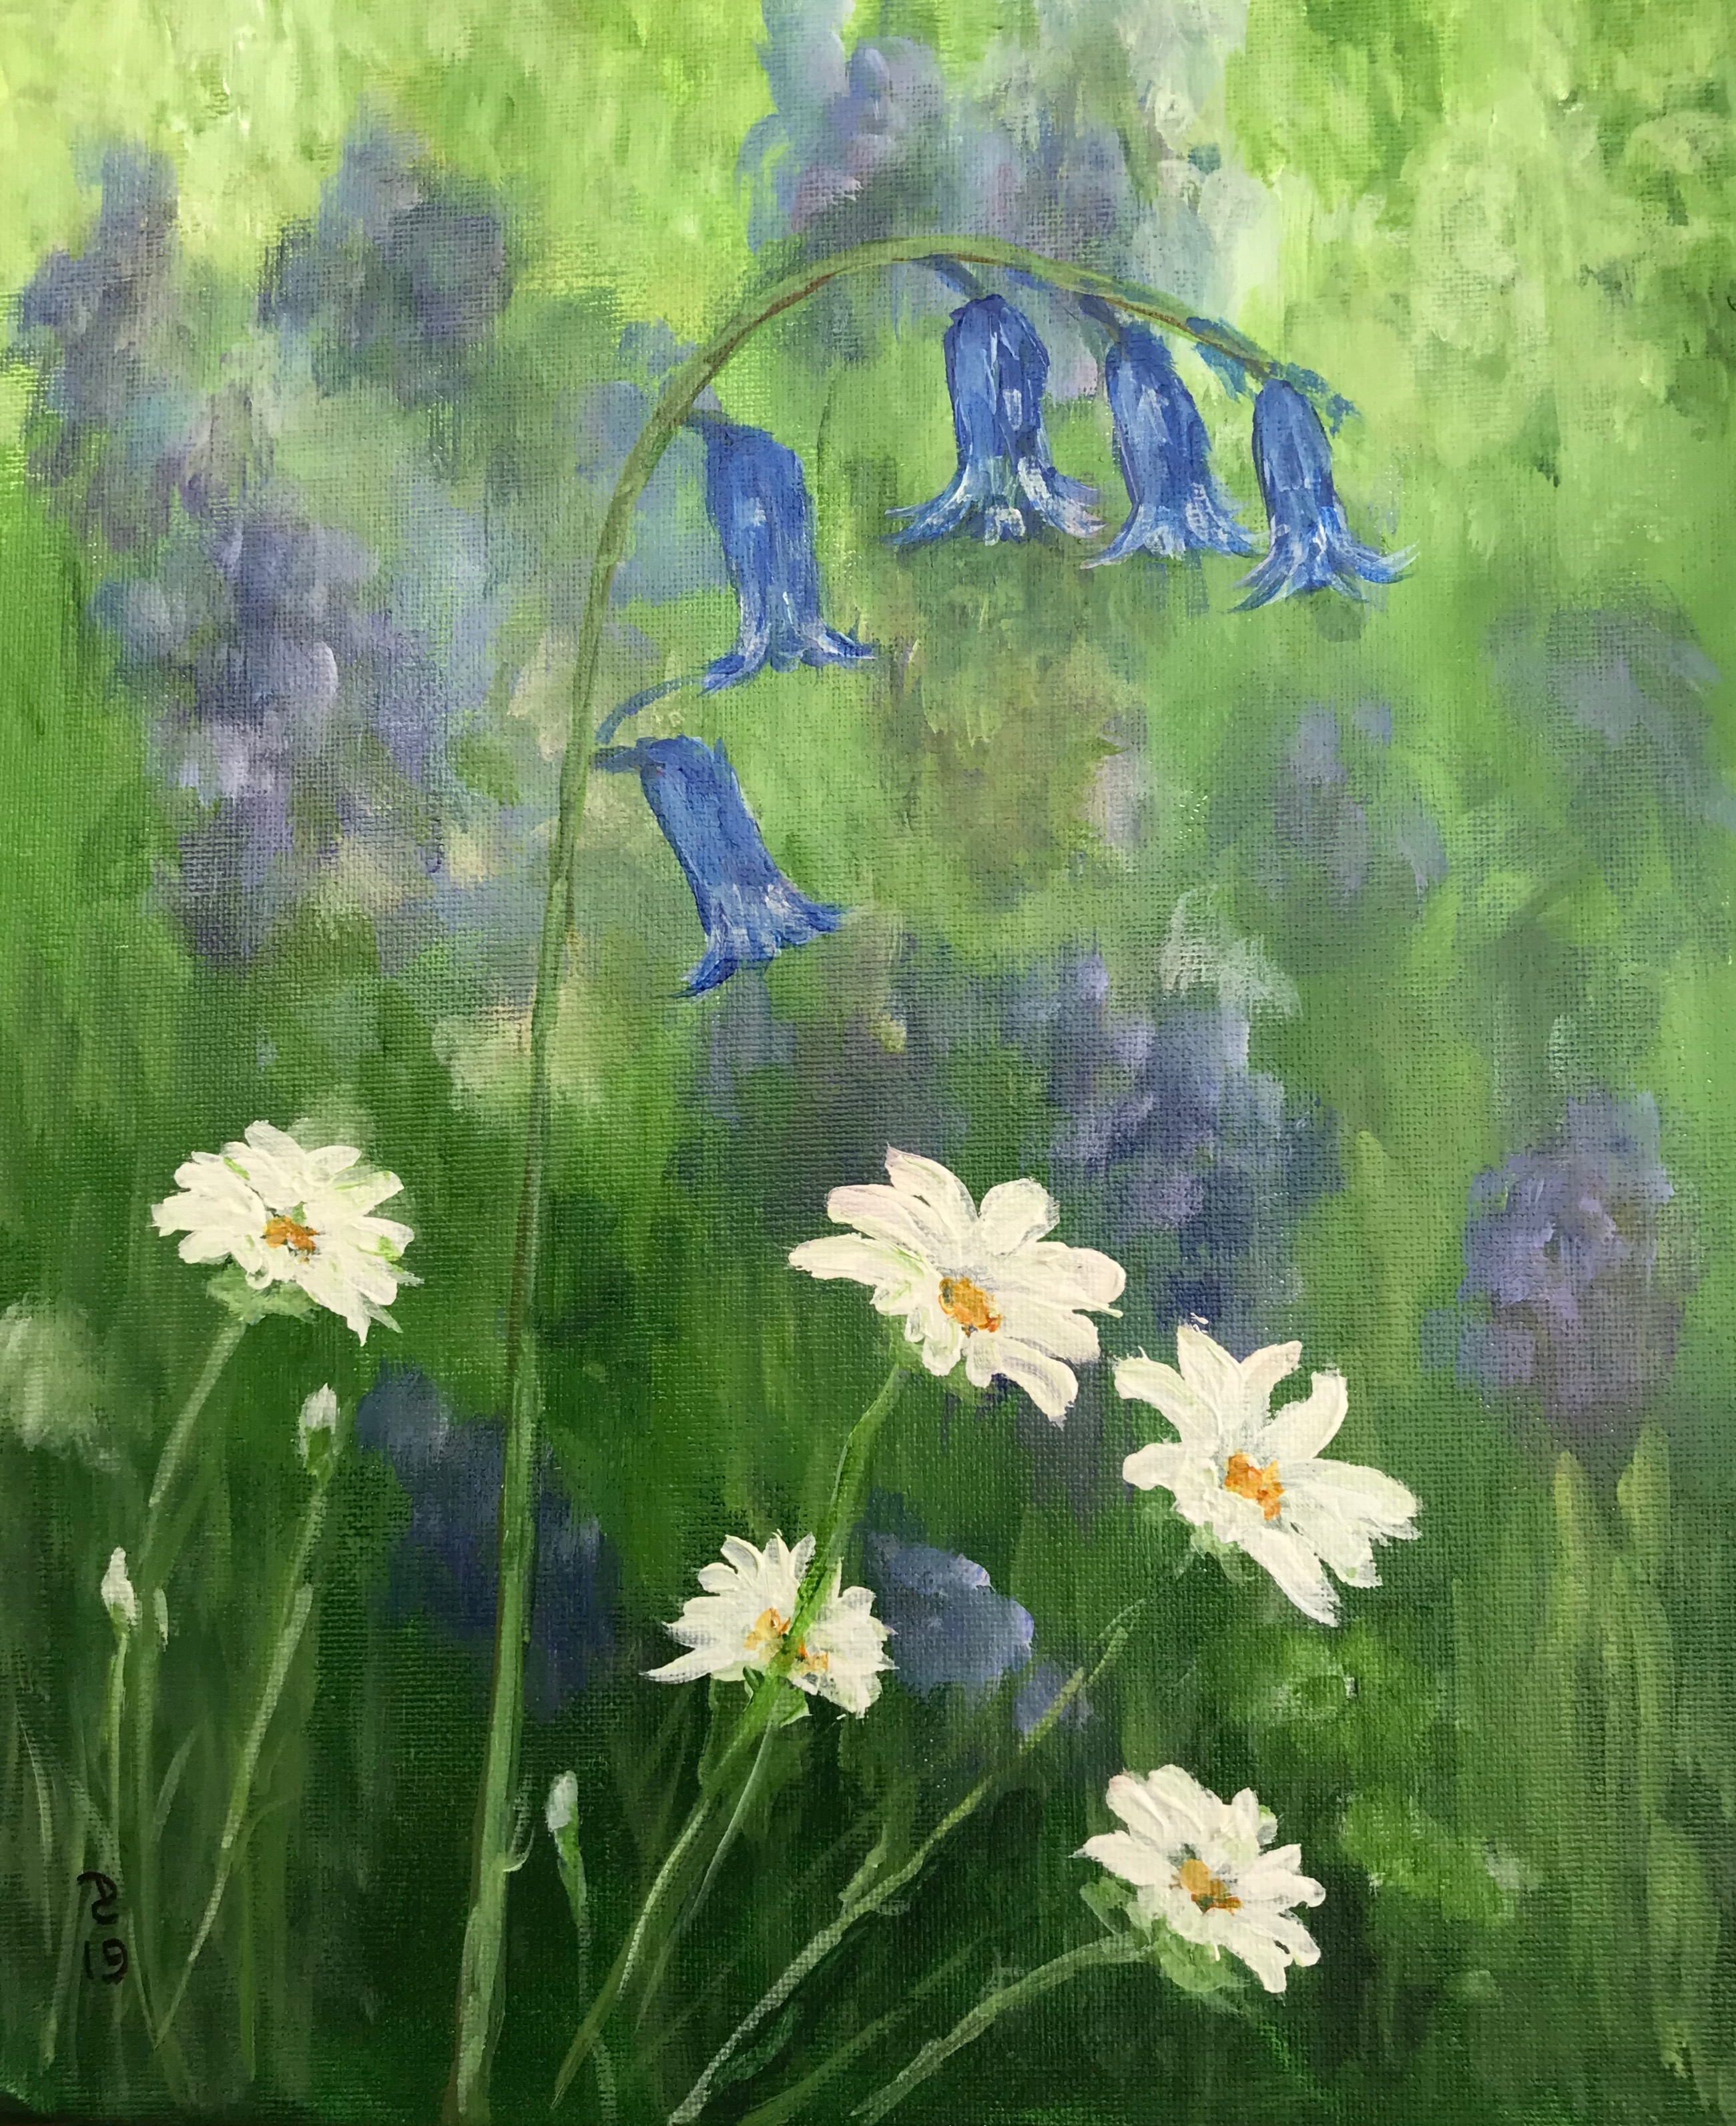 Bluebells and Daisies